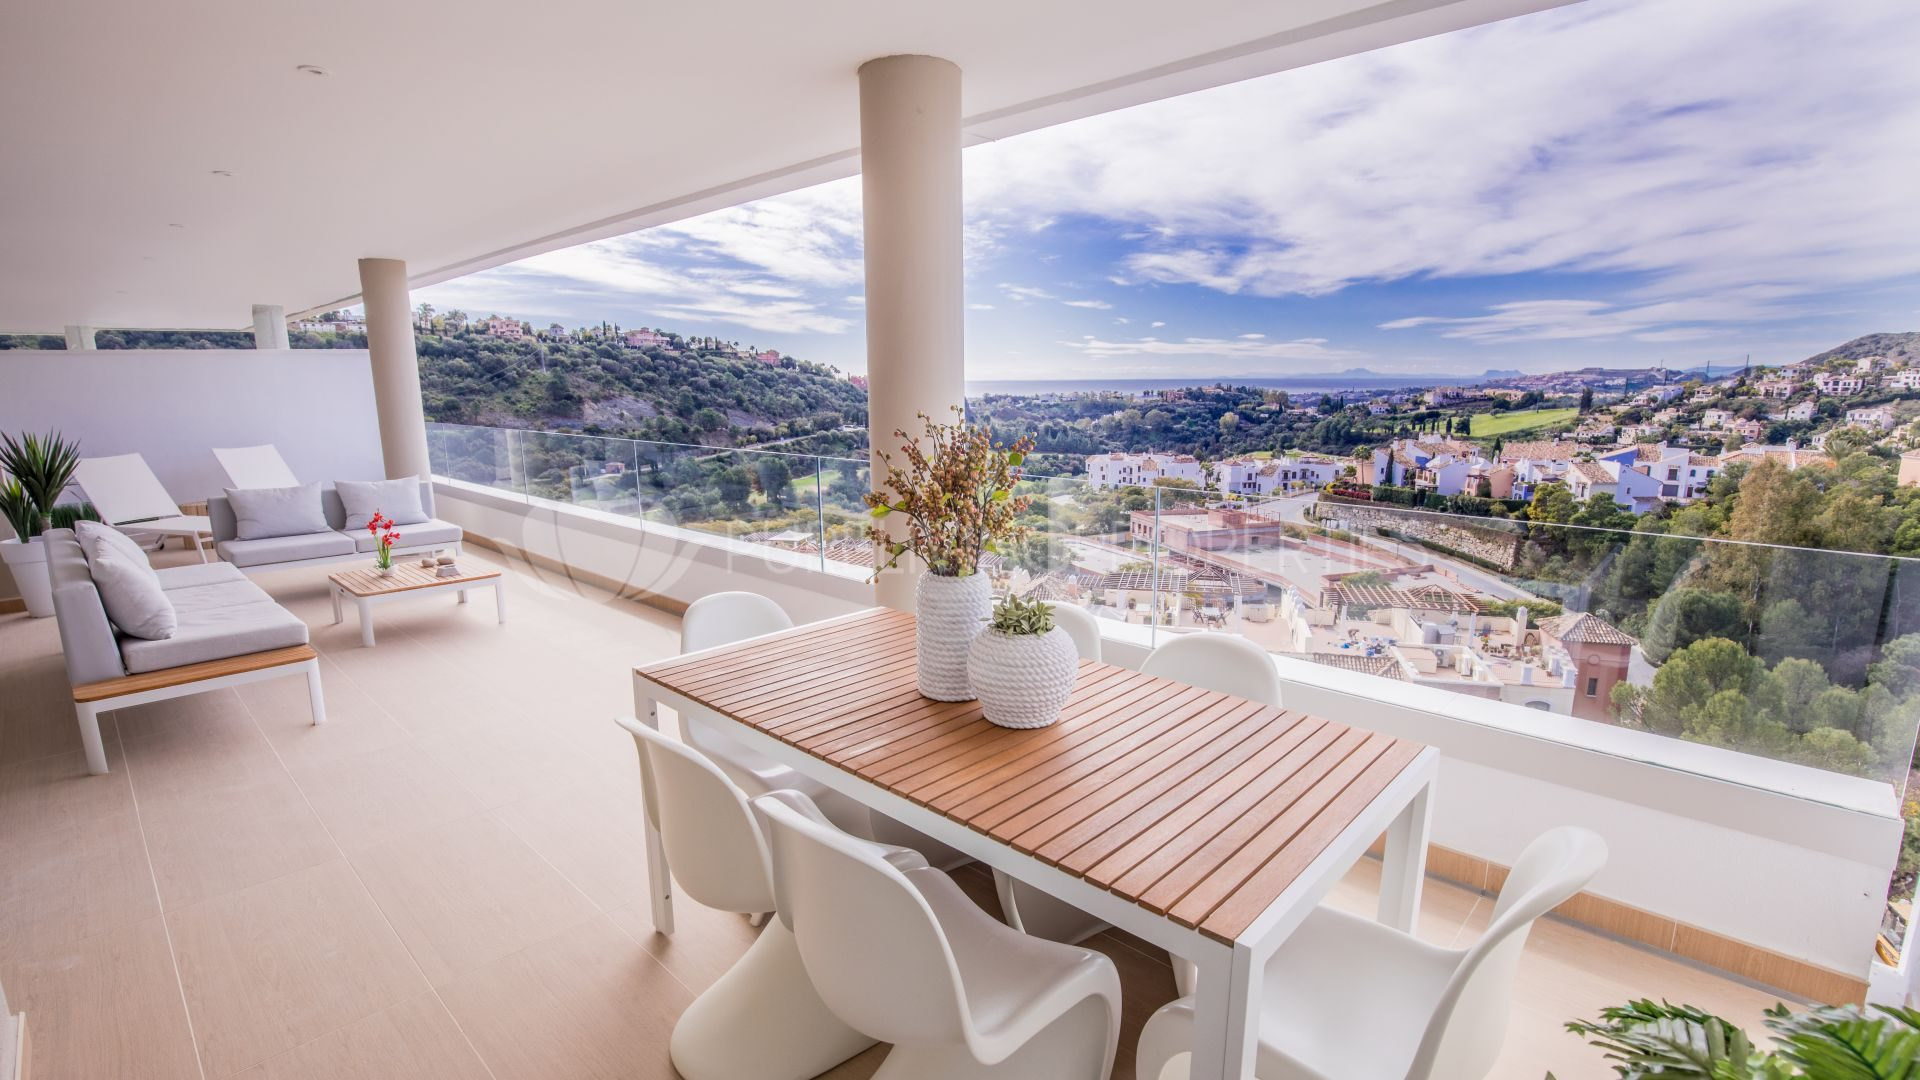 Luxury penthouse living in Marbella